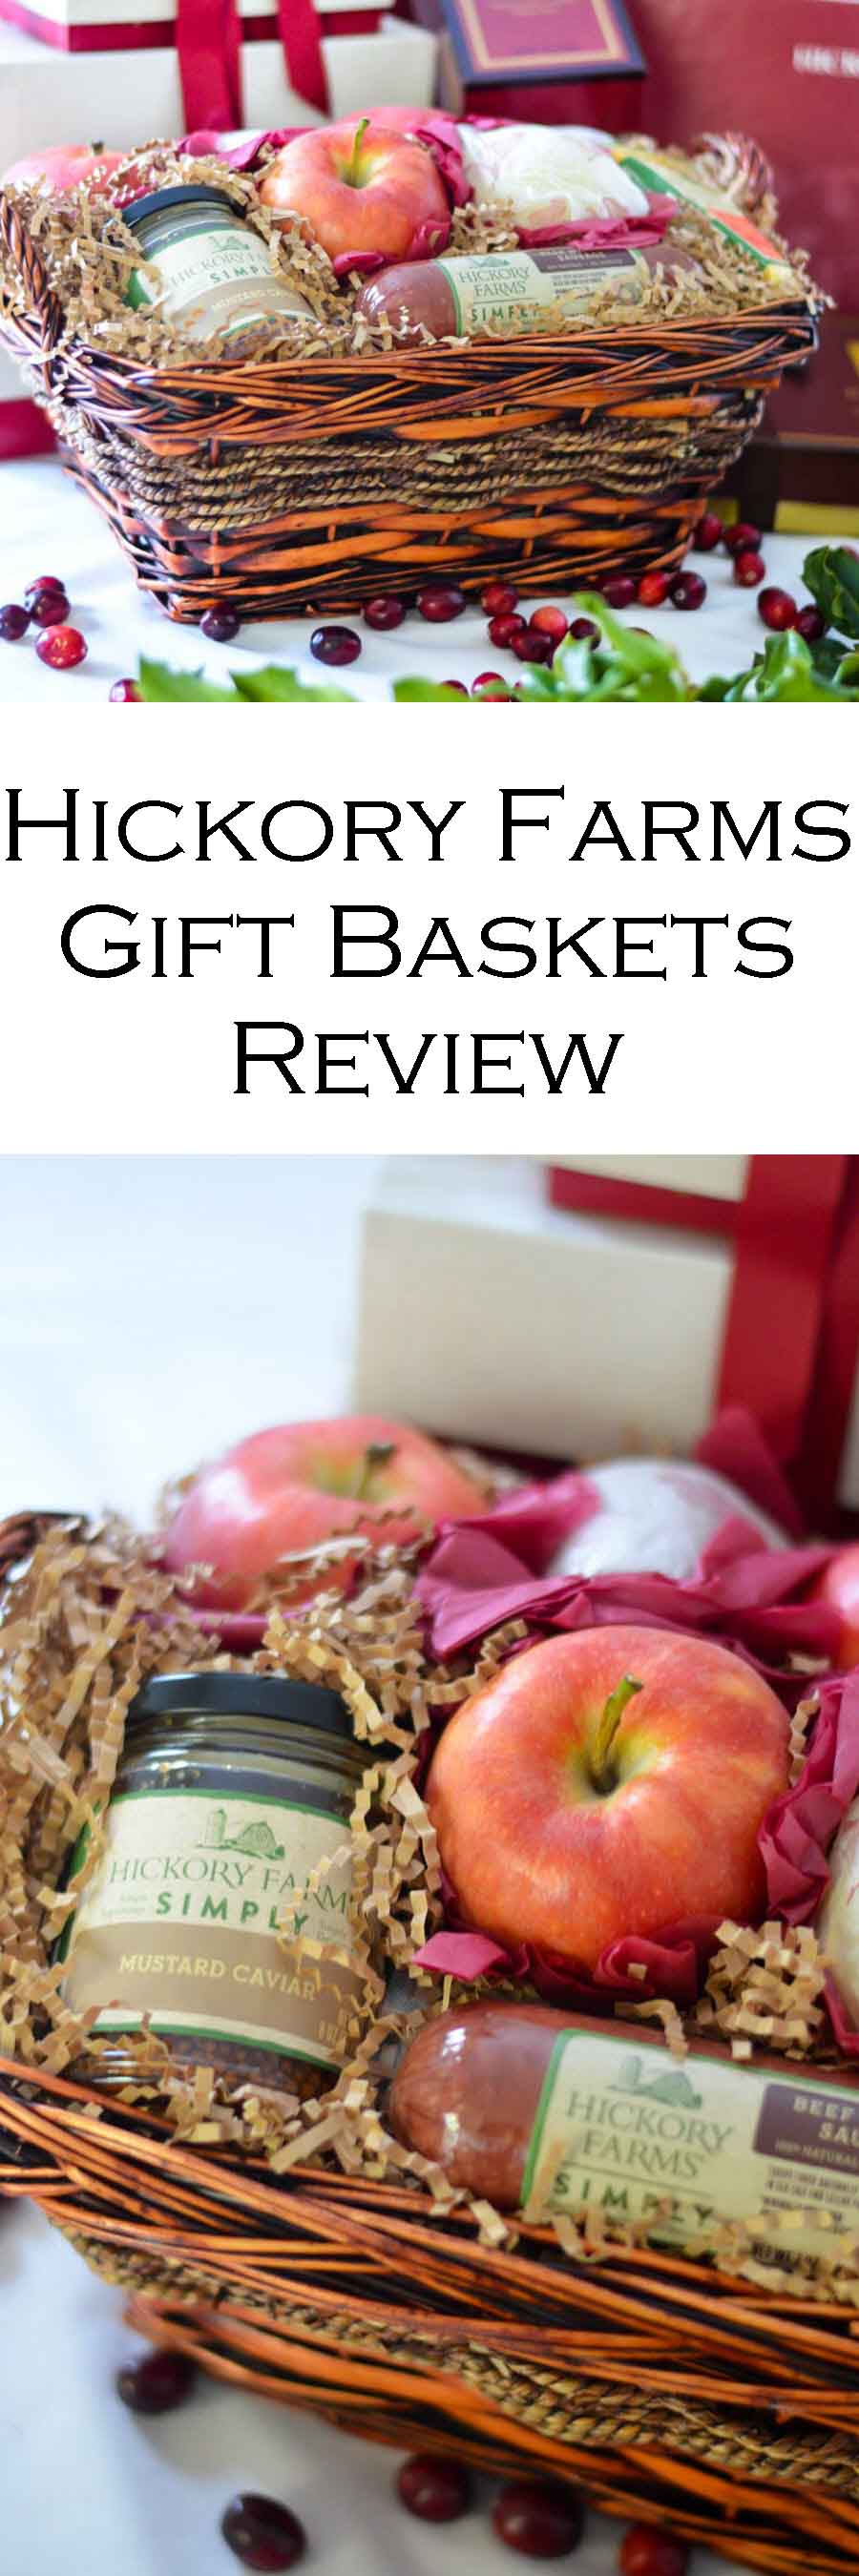 Hickory Farms Gift Baskets Review #Christmas #Holidays #Holidayseason #Christmasgifts #Giftguide